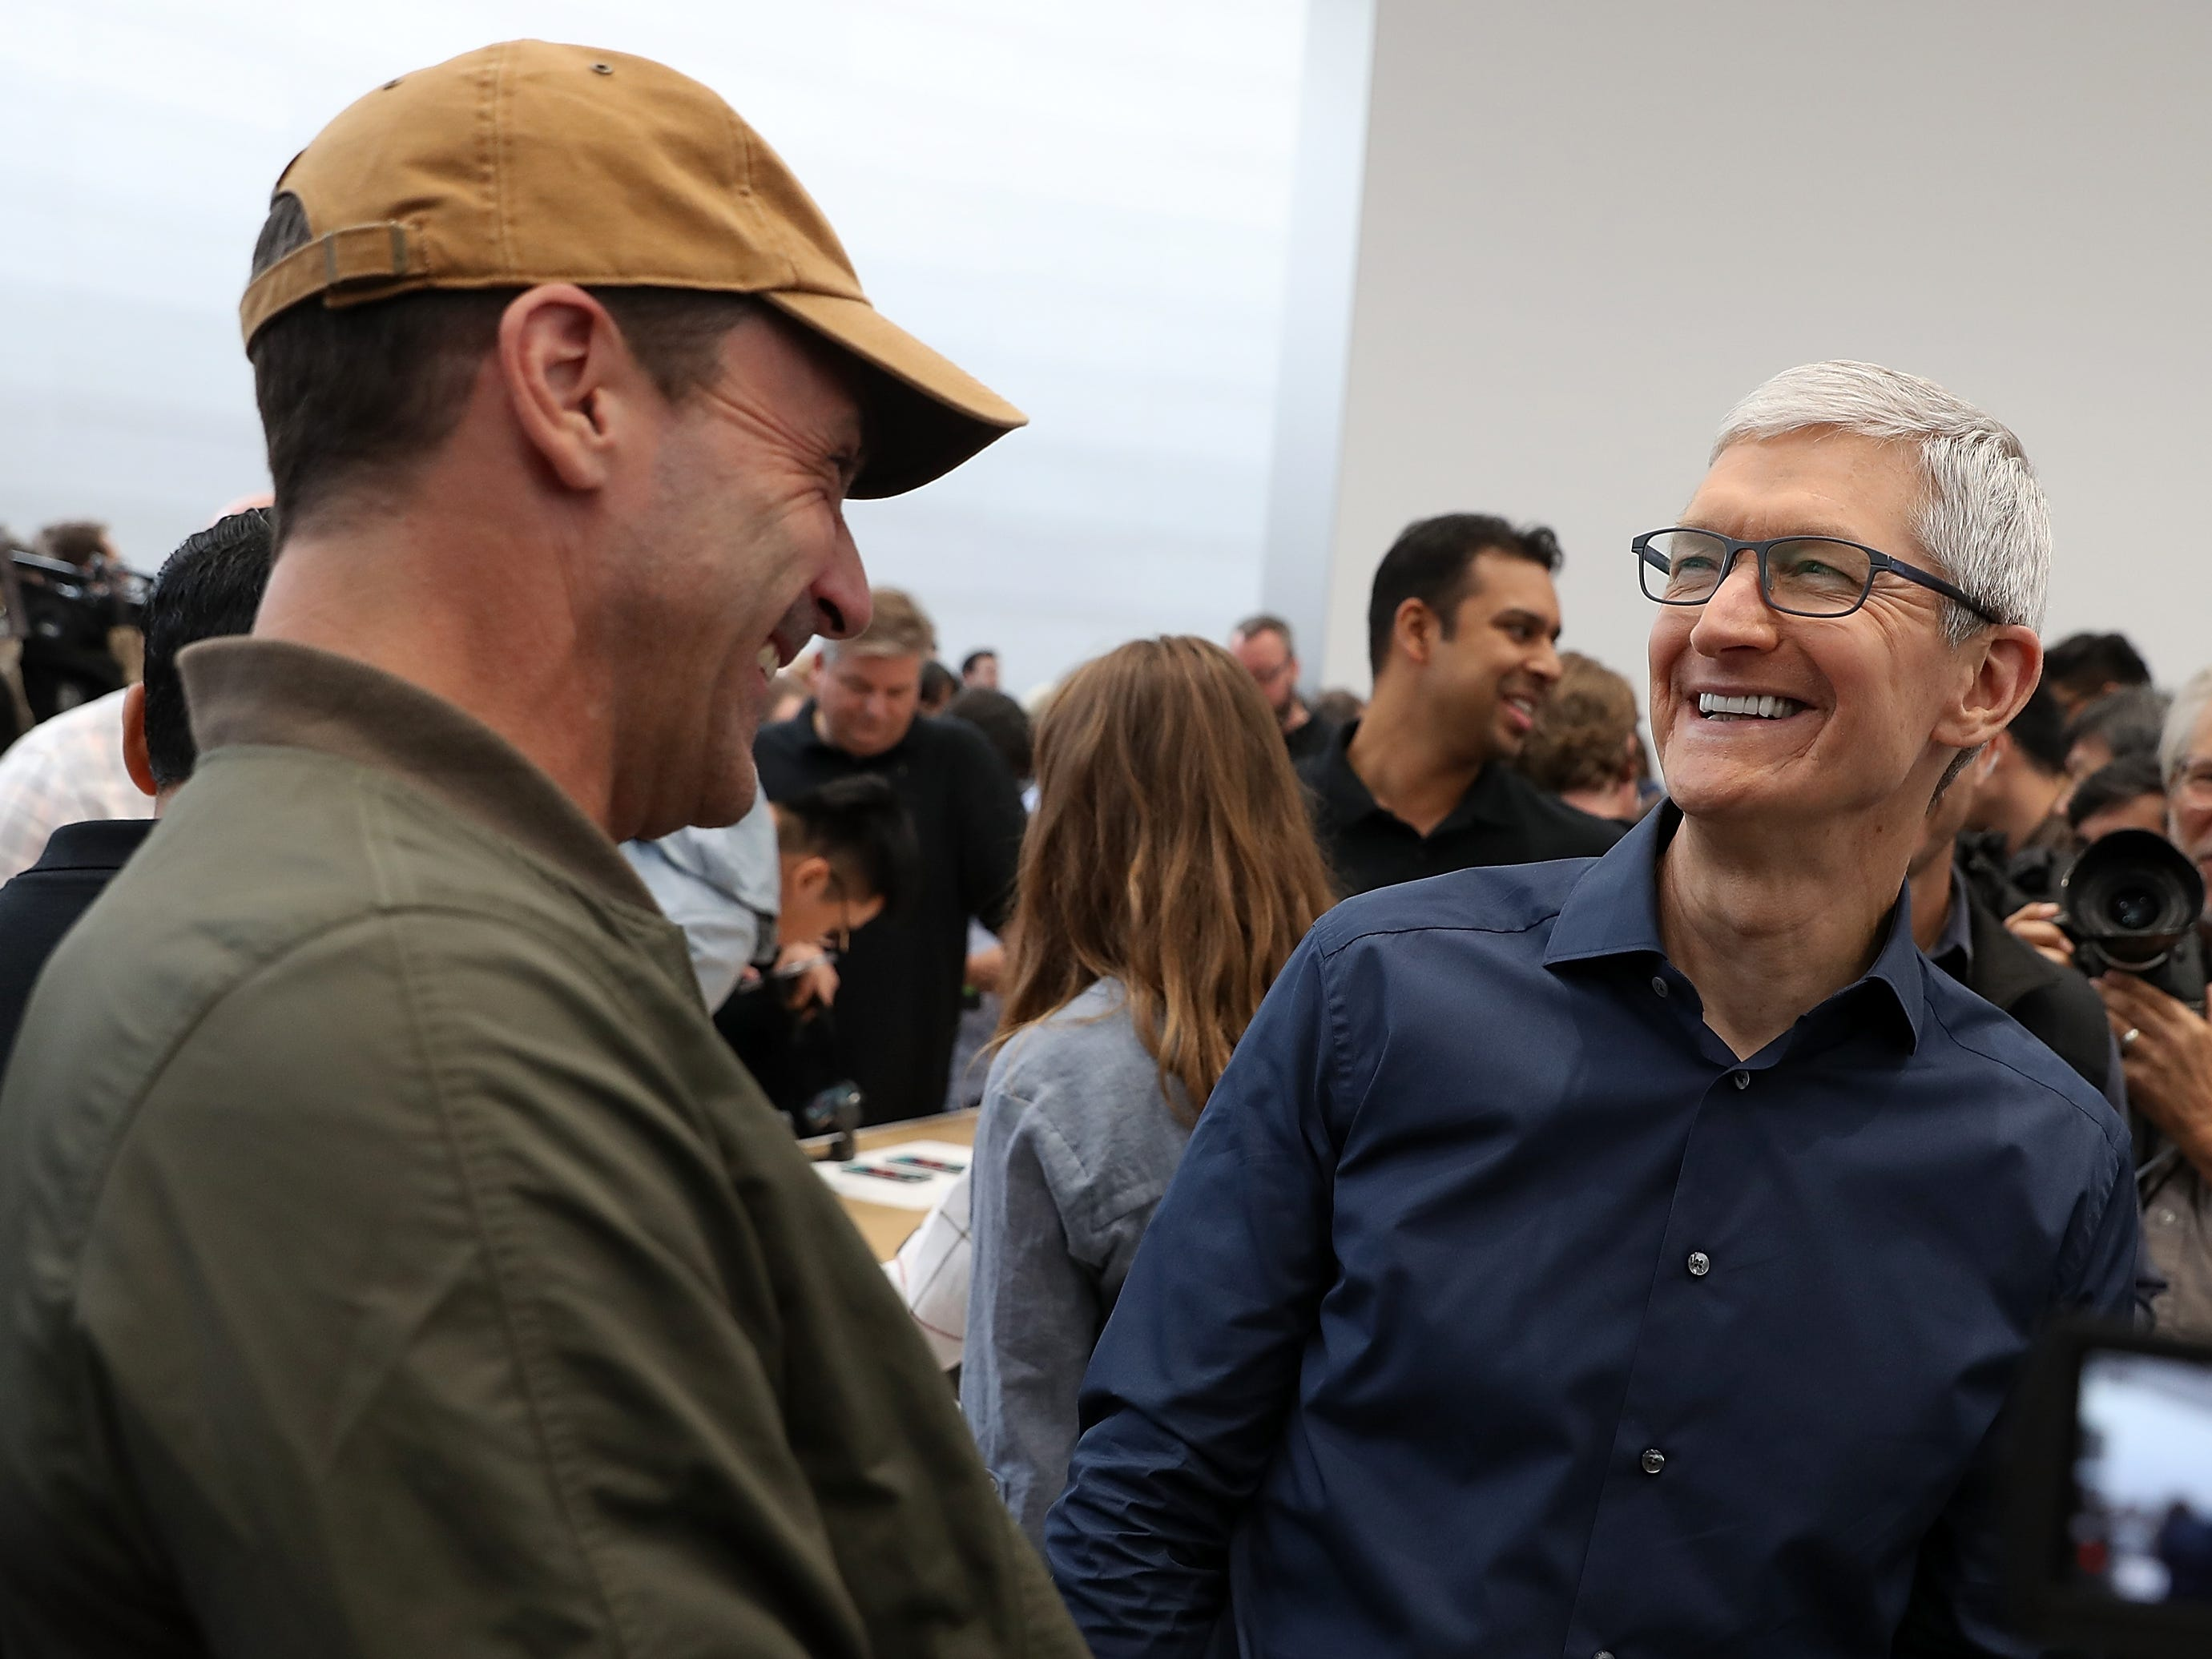 Apple CEO Tim Cook, right, laughs with actor Jon Hamm during an Apple special event at the Steve Jobs Theatre on Sept. 12, 2018, in Cupertino, Calif.